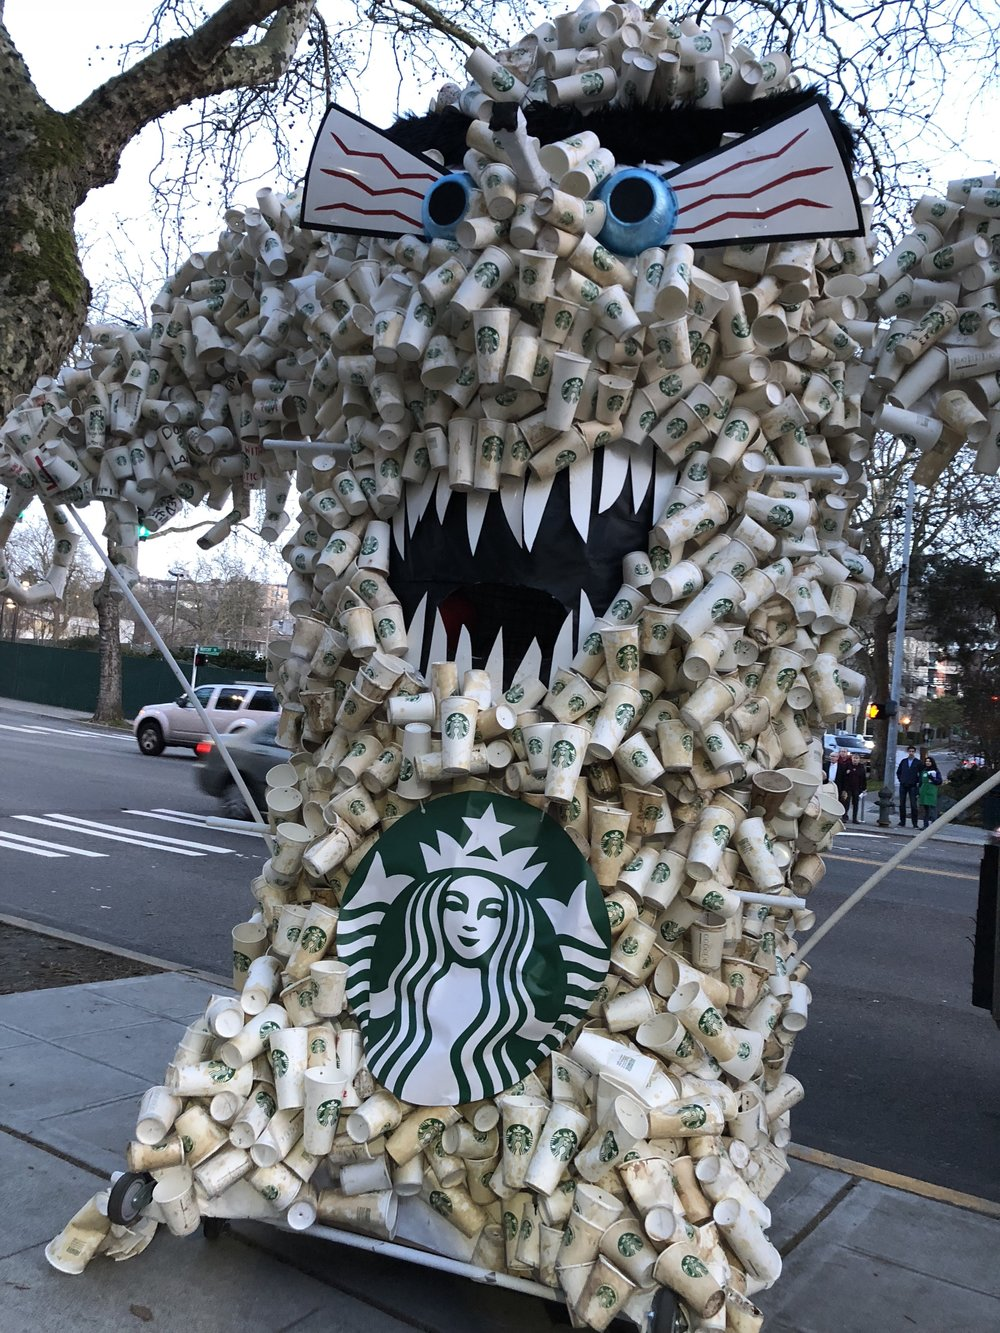 Activists used 8,000 cups to create the cup monster, the same amount Starbucks serves every minute.